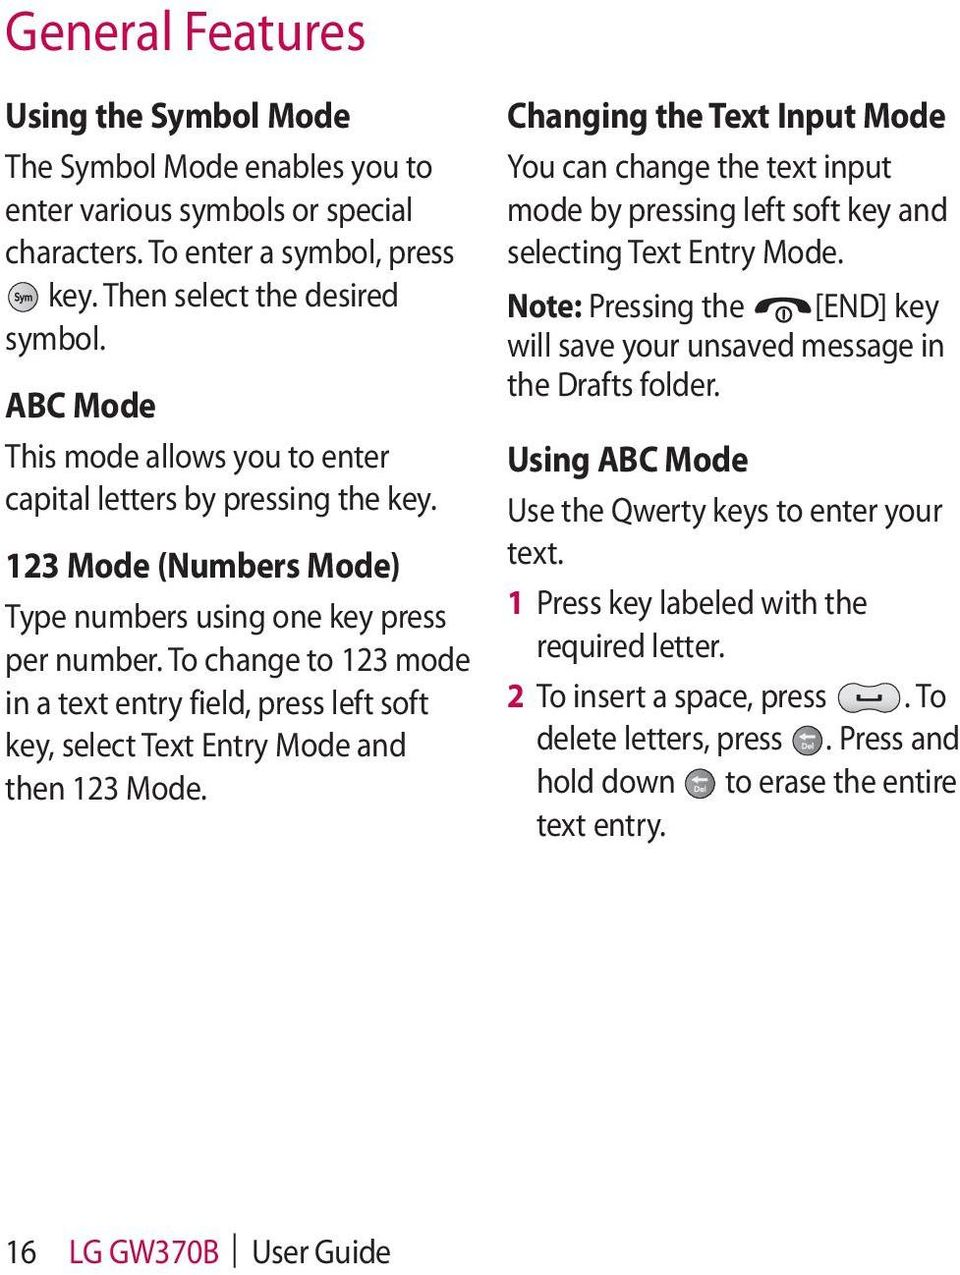 To change to 123 mode in a text entry field, press left soft key, select Text Entry Mode and then 123 Mode.